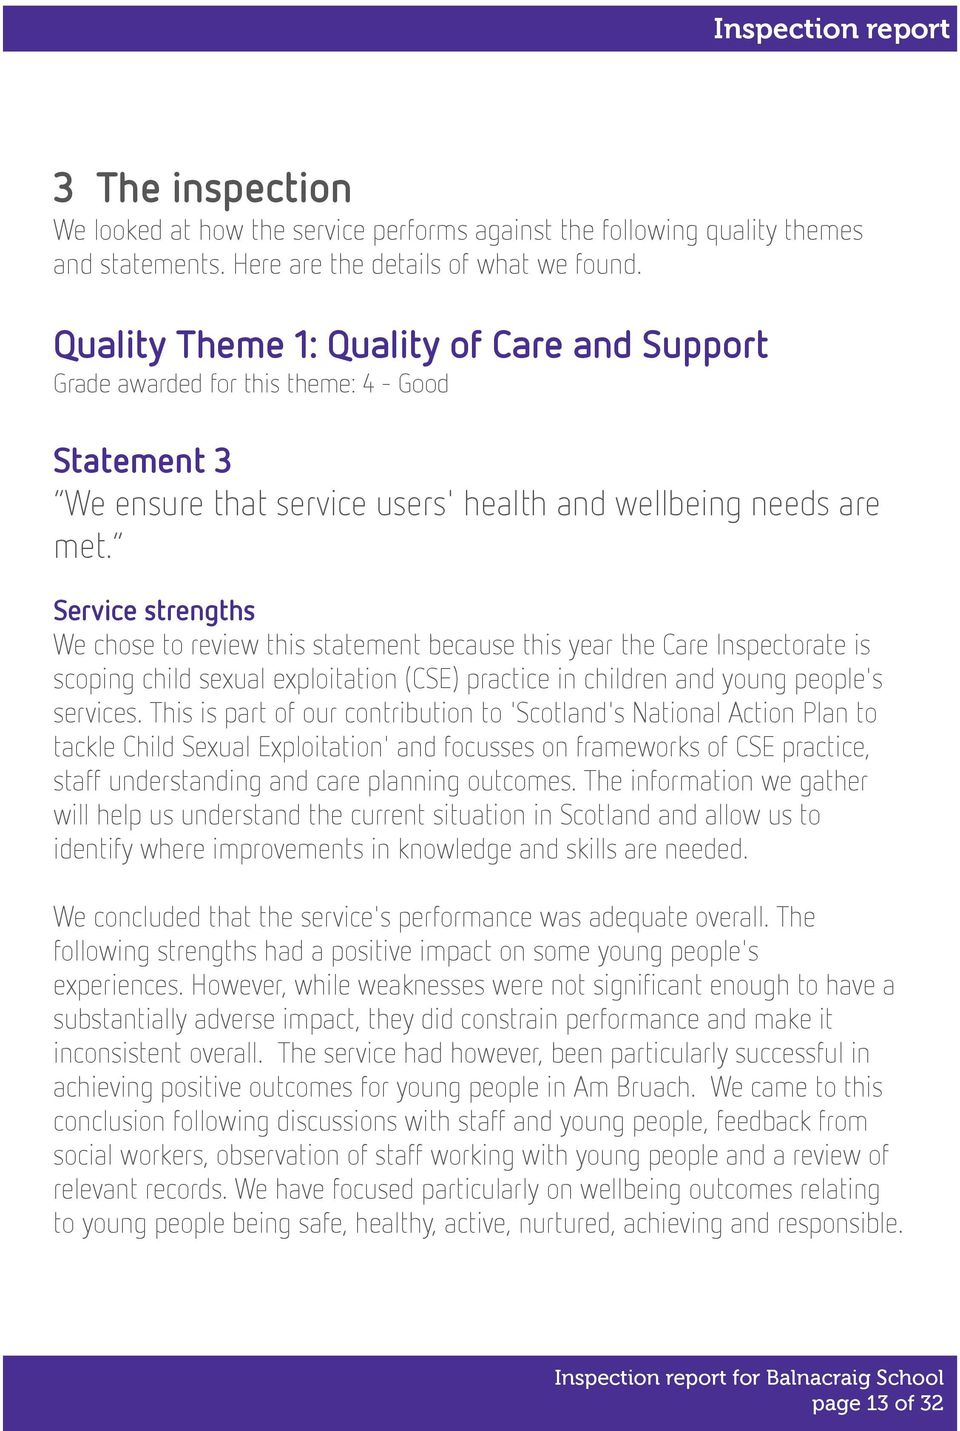 Service strengths We chose to review this statement because this year the Care Inspectorate is scoping child sexual exploitation (CSE) practice in children and young people's services.